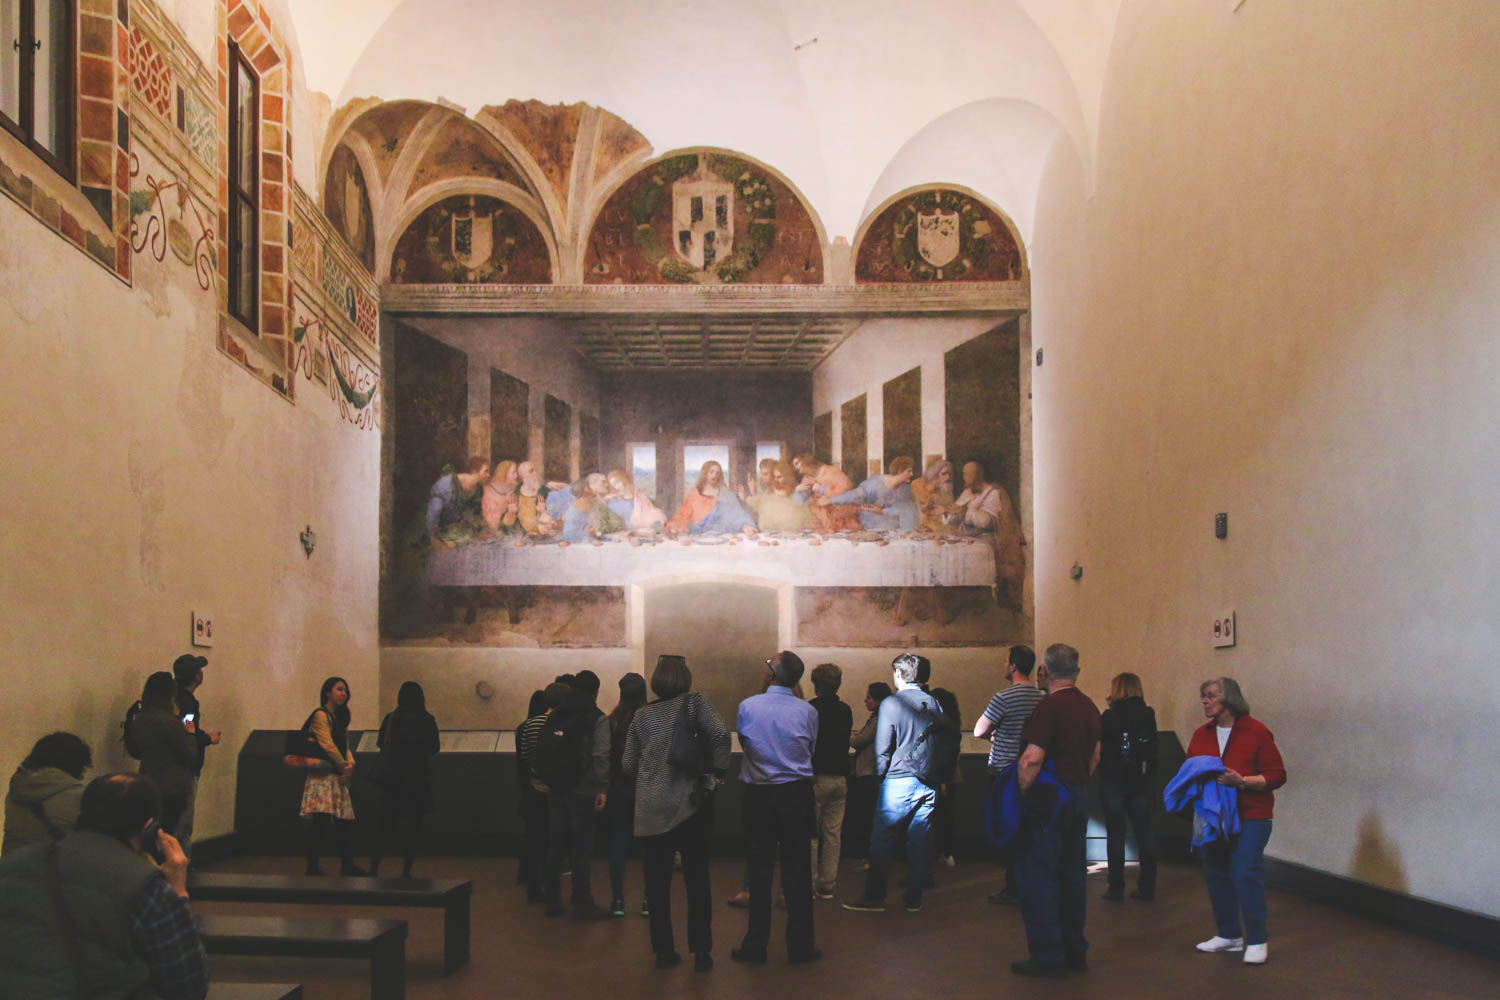 The Last Supper And Scenes From Milan The Journey Of